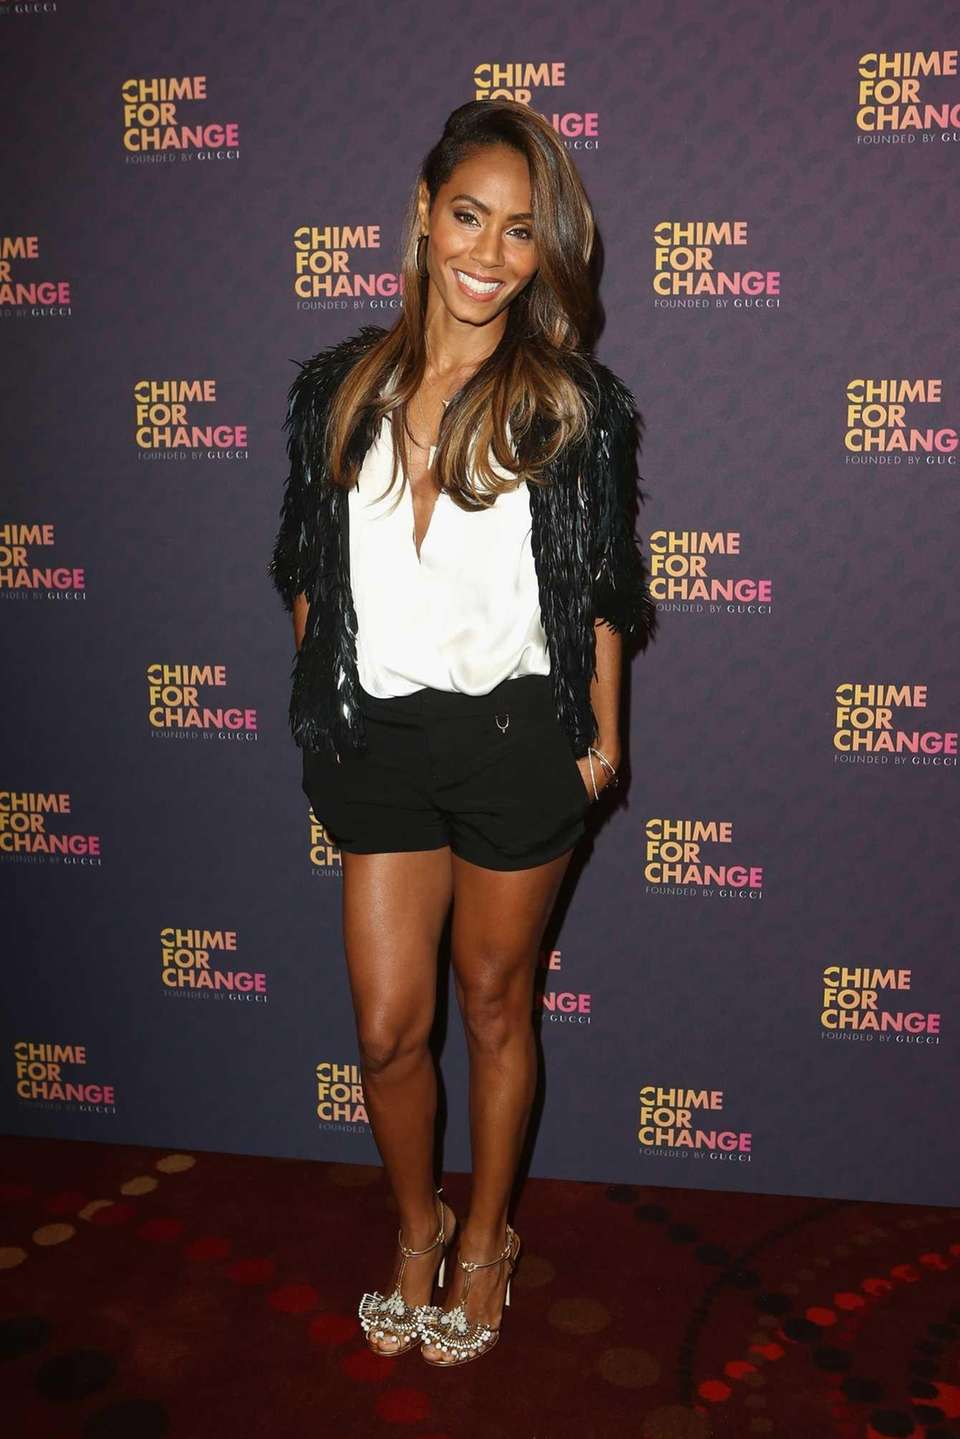 Jada Pinkett Smith was born on Sept. 18,